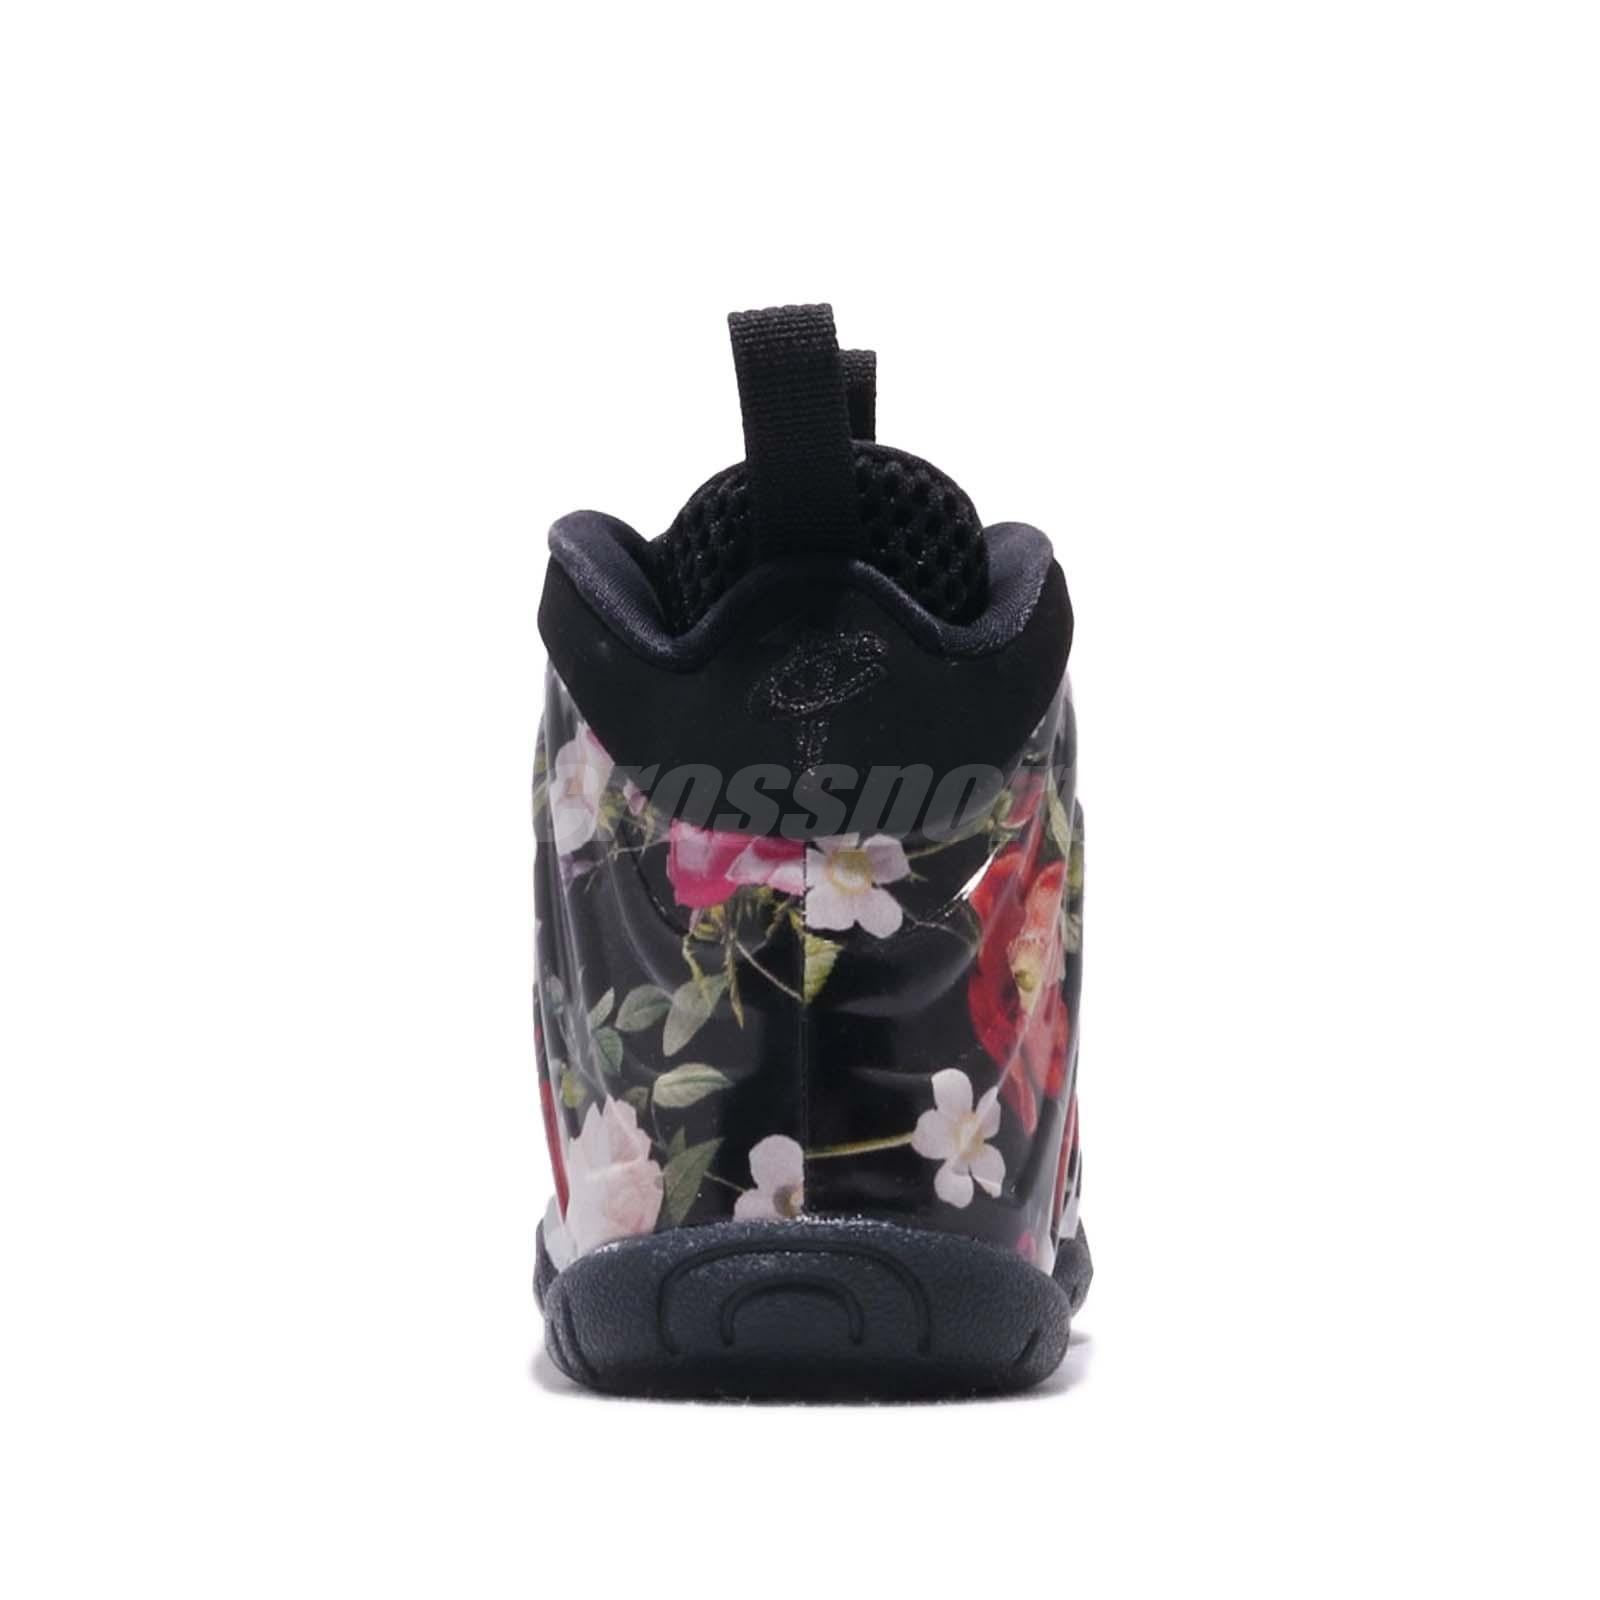 Nike Little Posite One Prm PS Foamposite Floral Kid Preschool Shoes ... a26ce221b